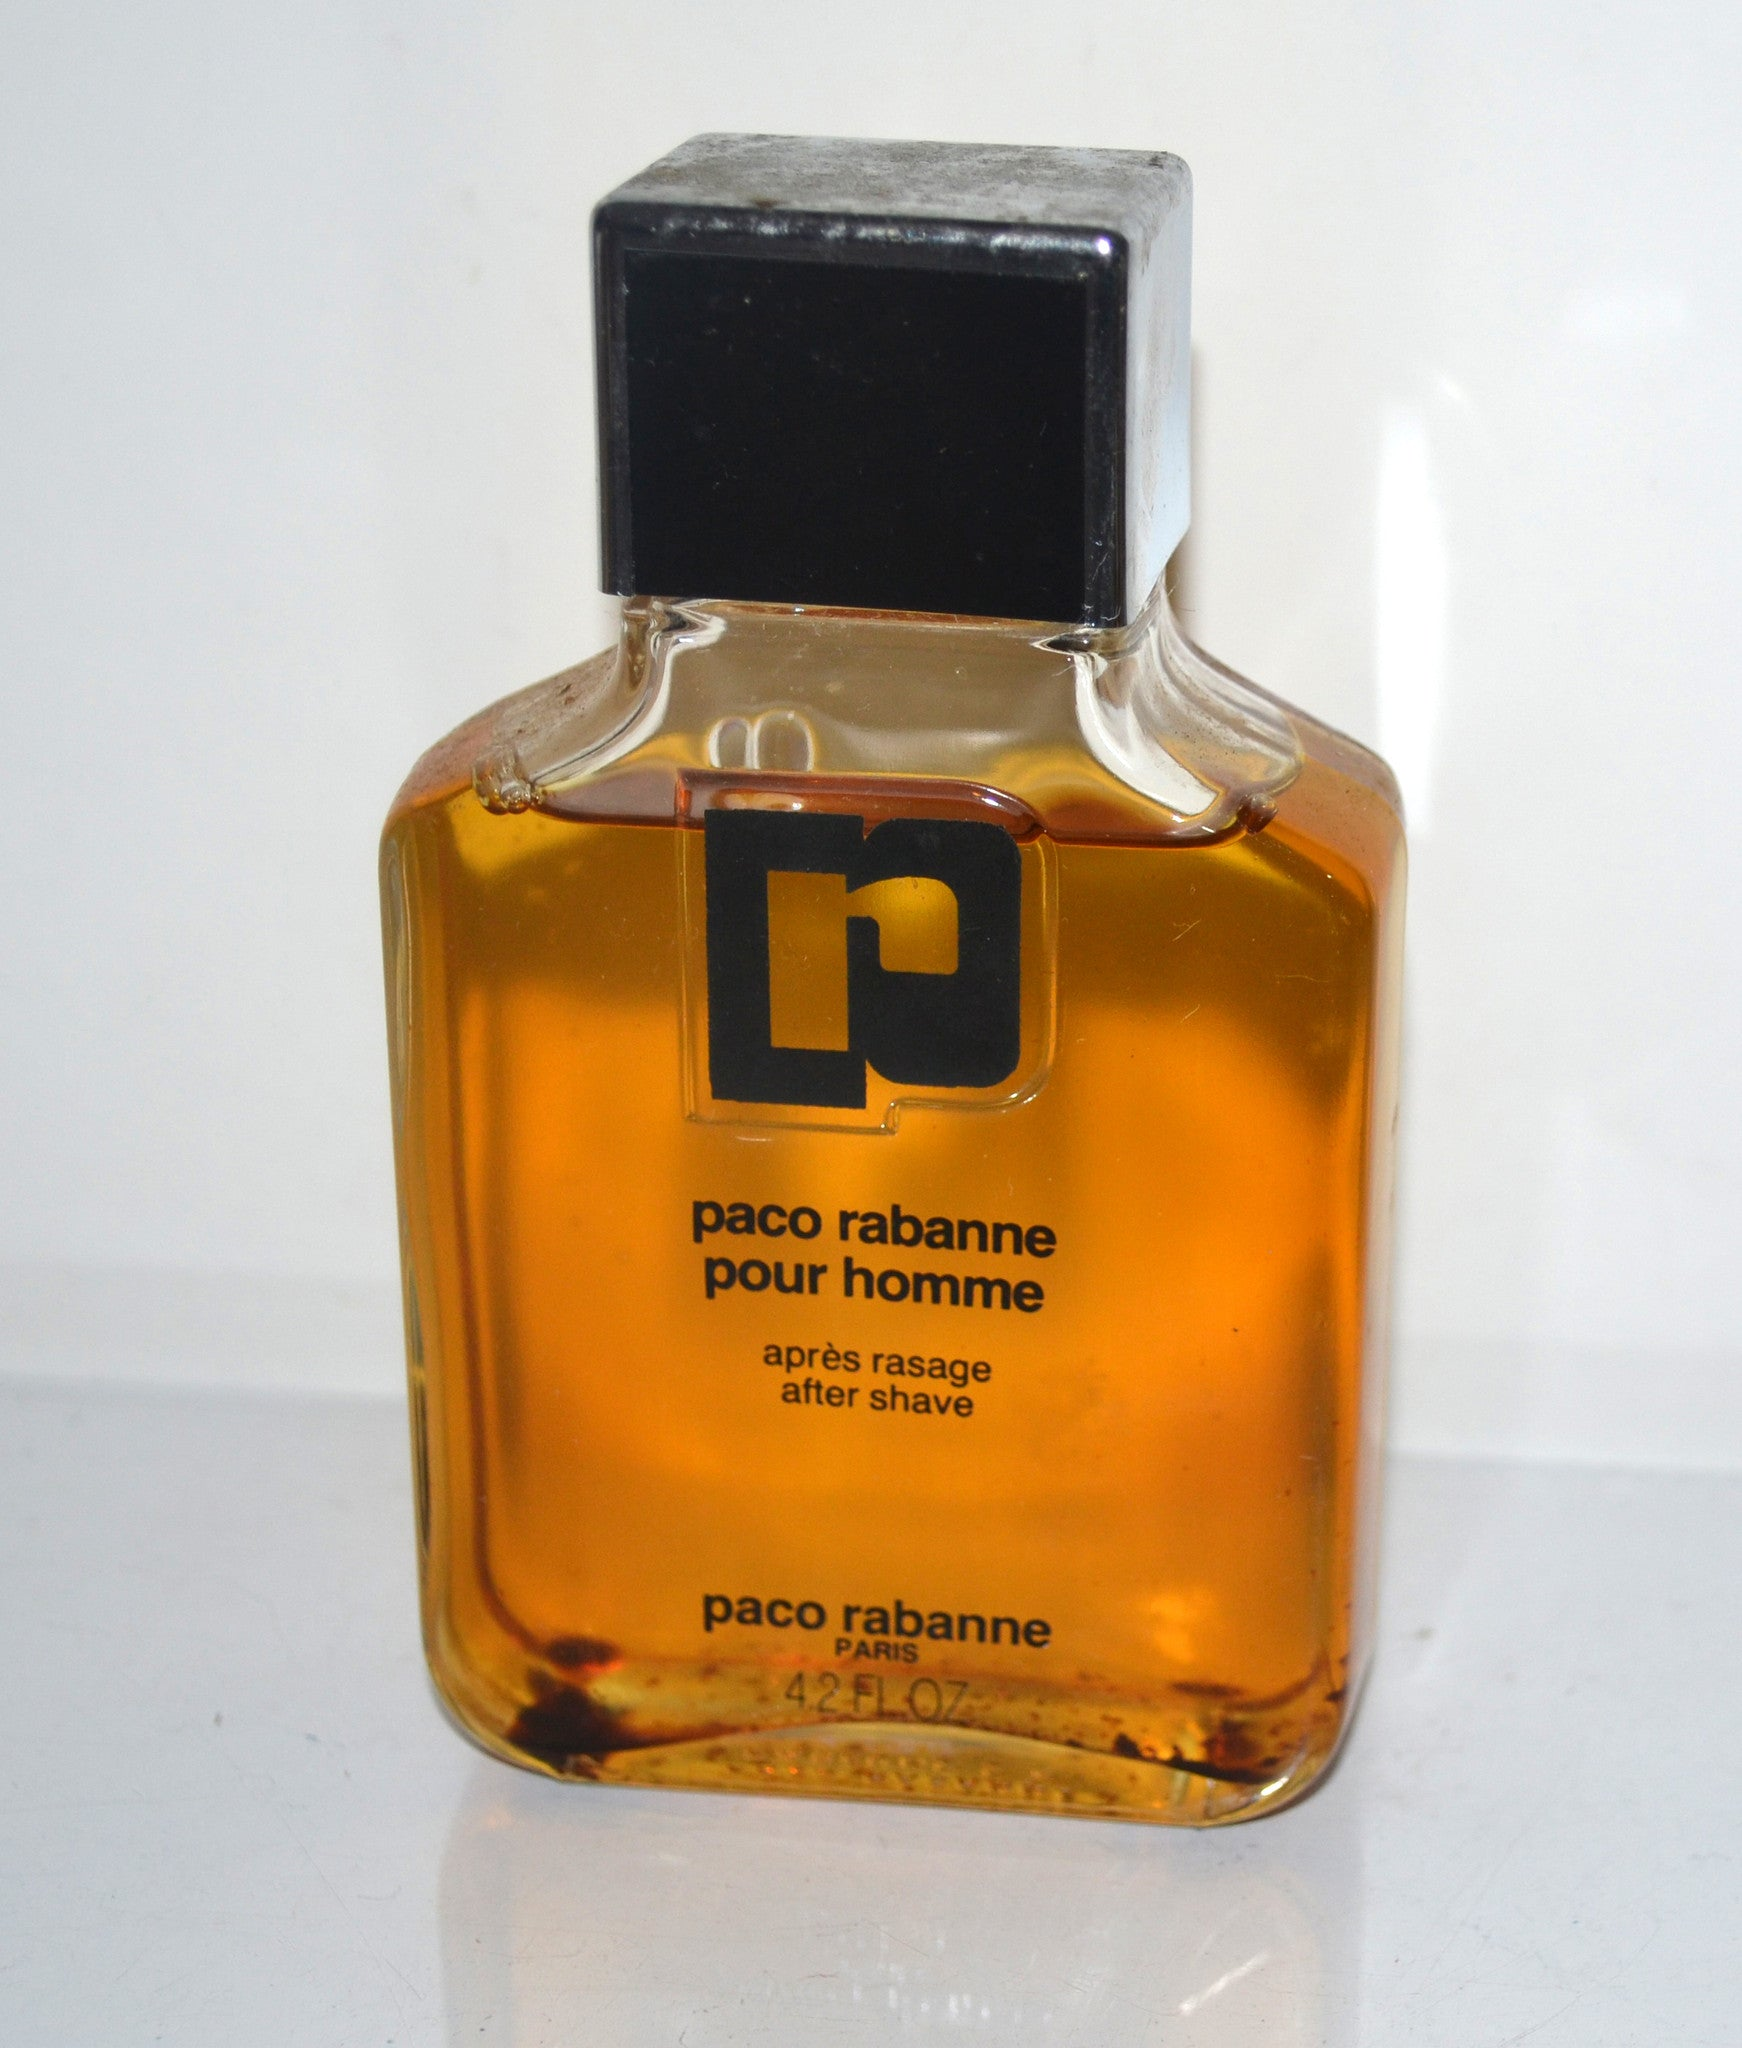 Paco Rabanne After Shave